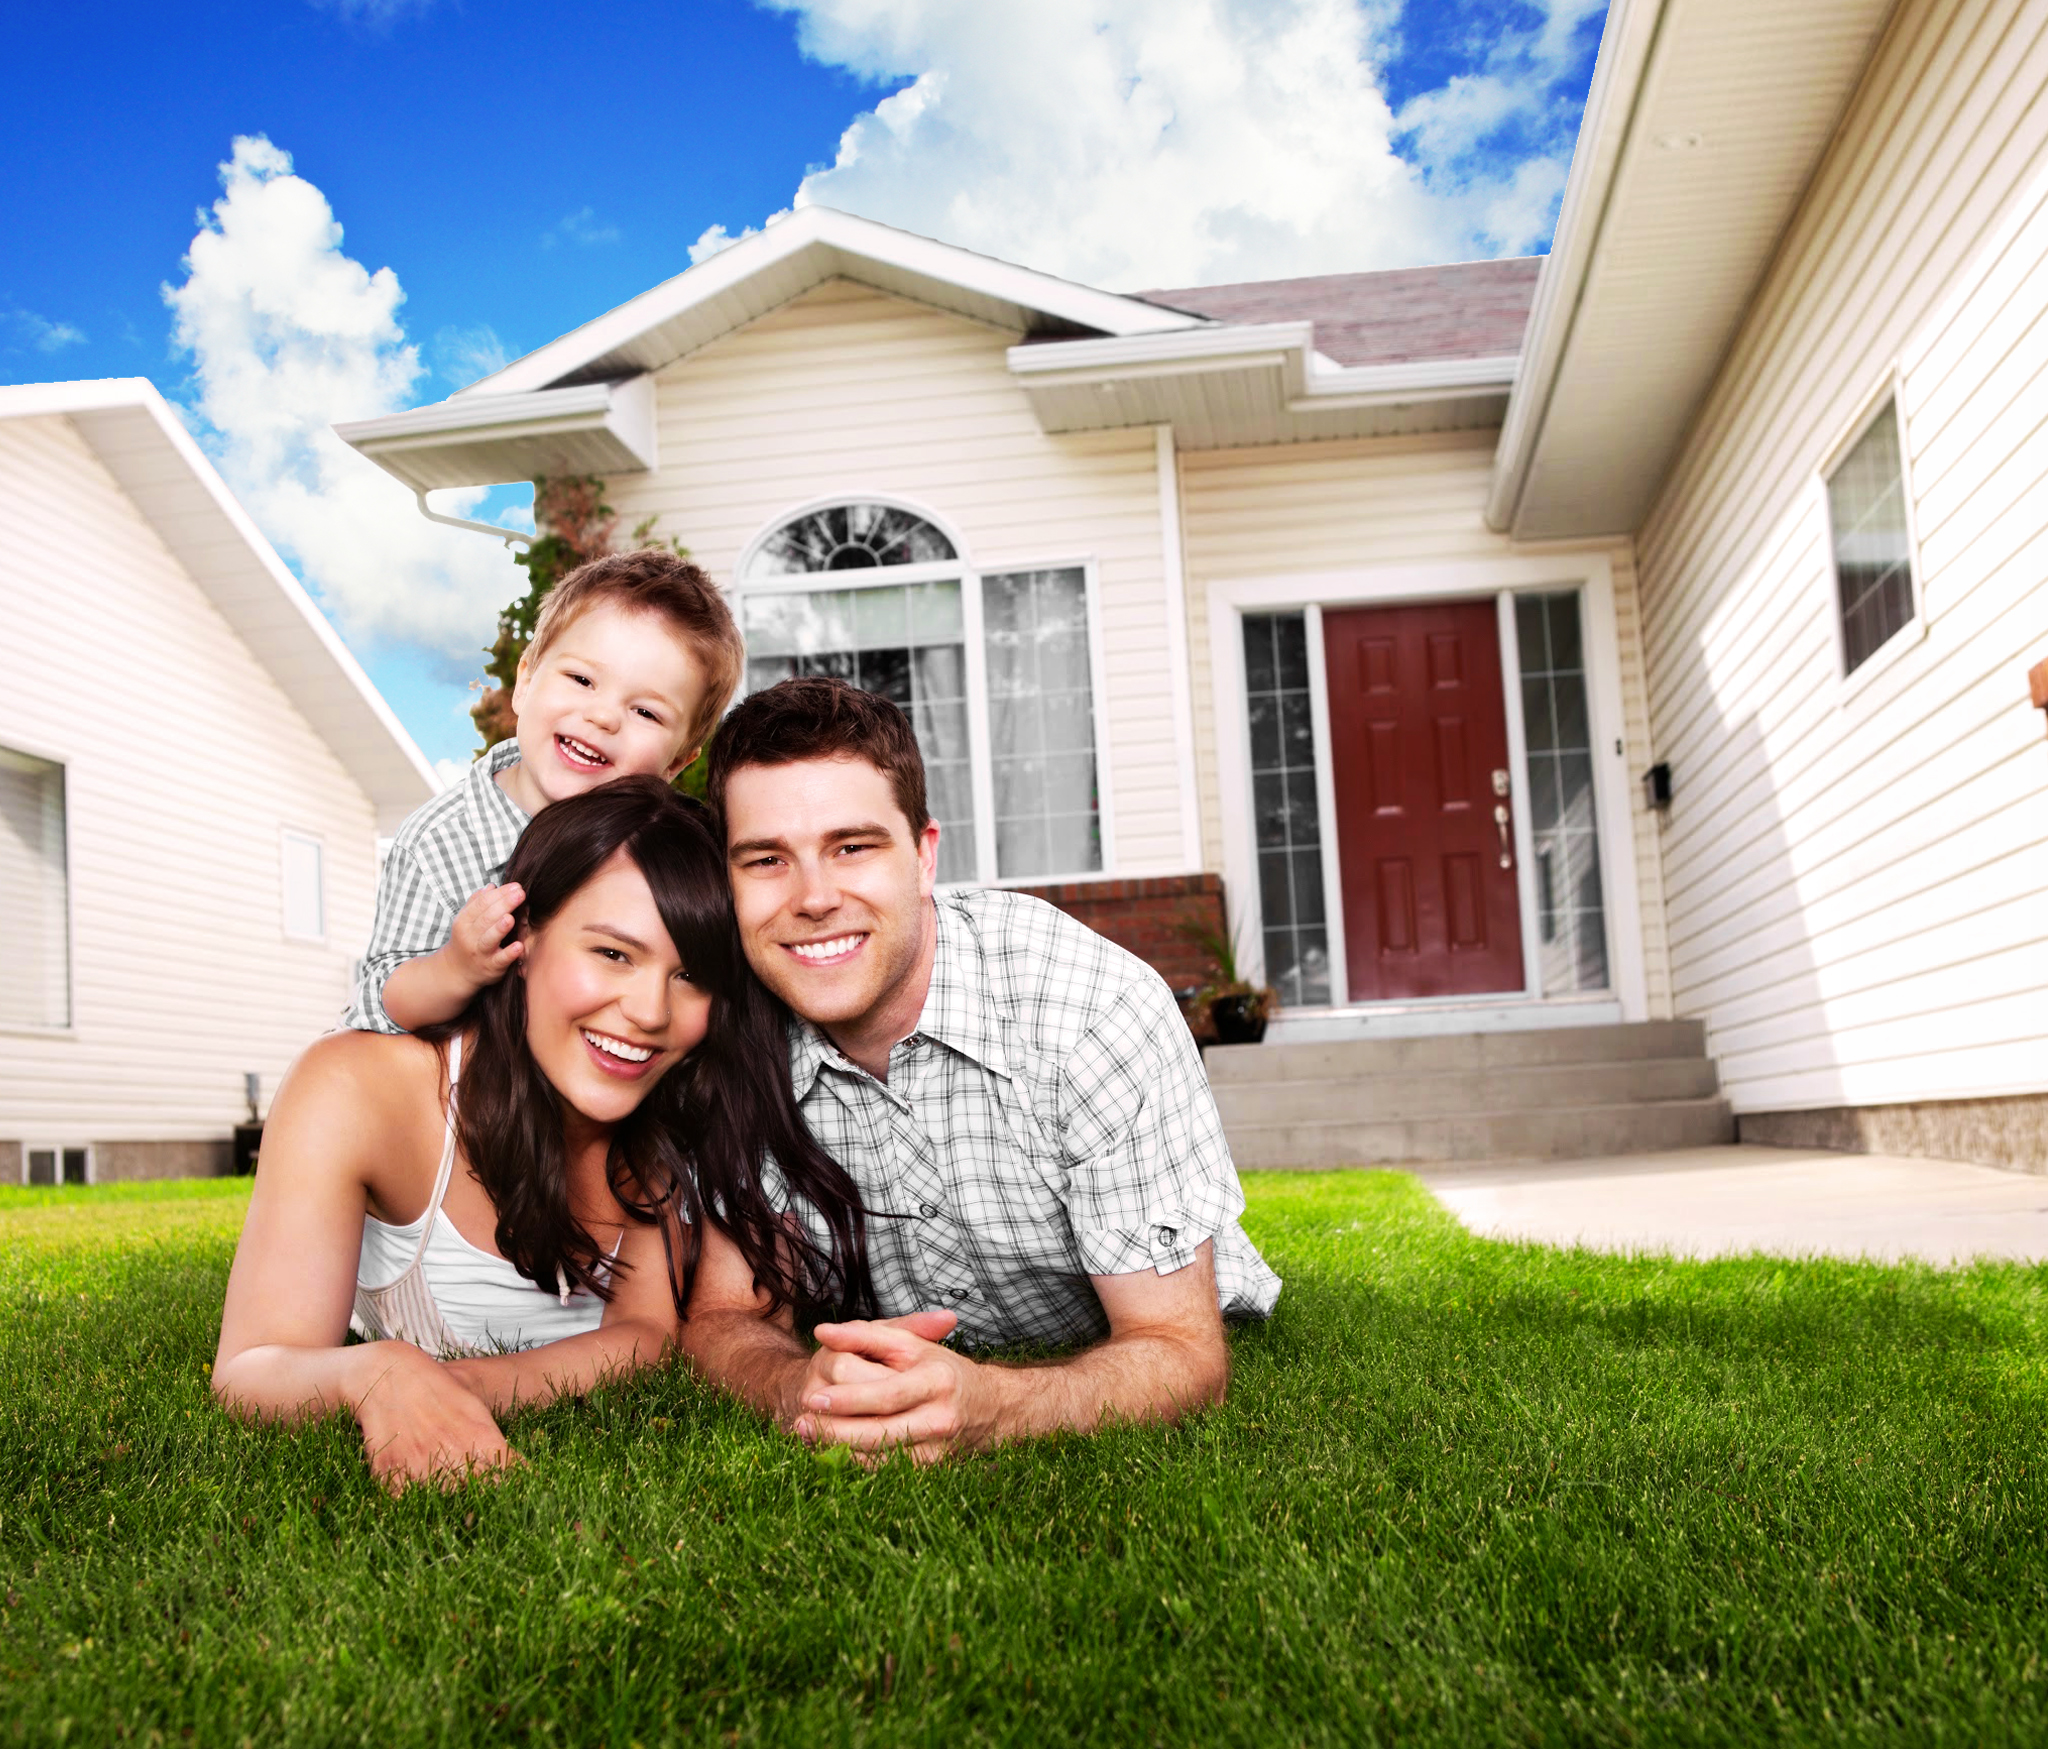 Homeowners  >> Economy And Homeowners Are In A Better Position Than You Think